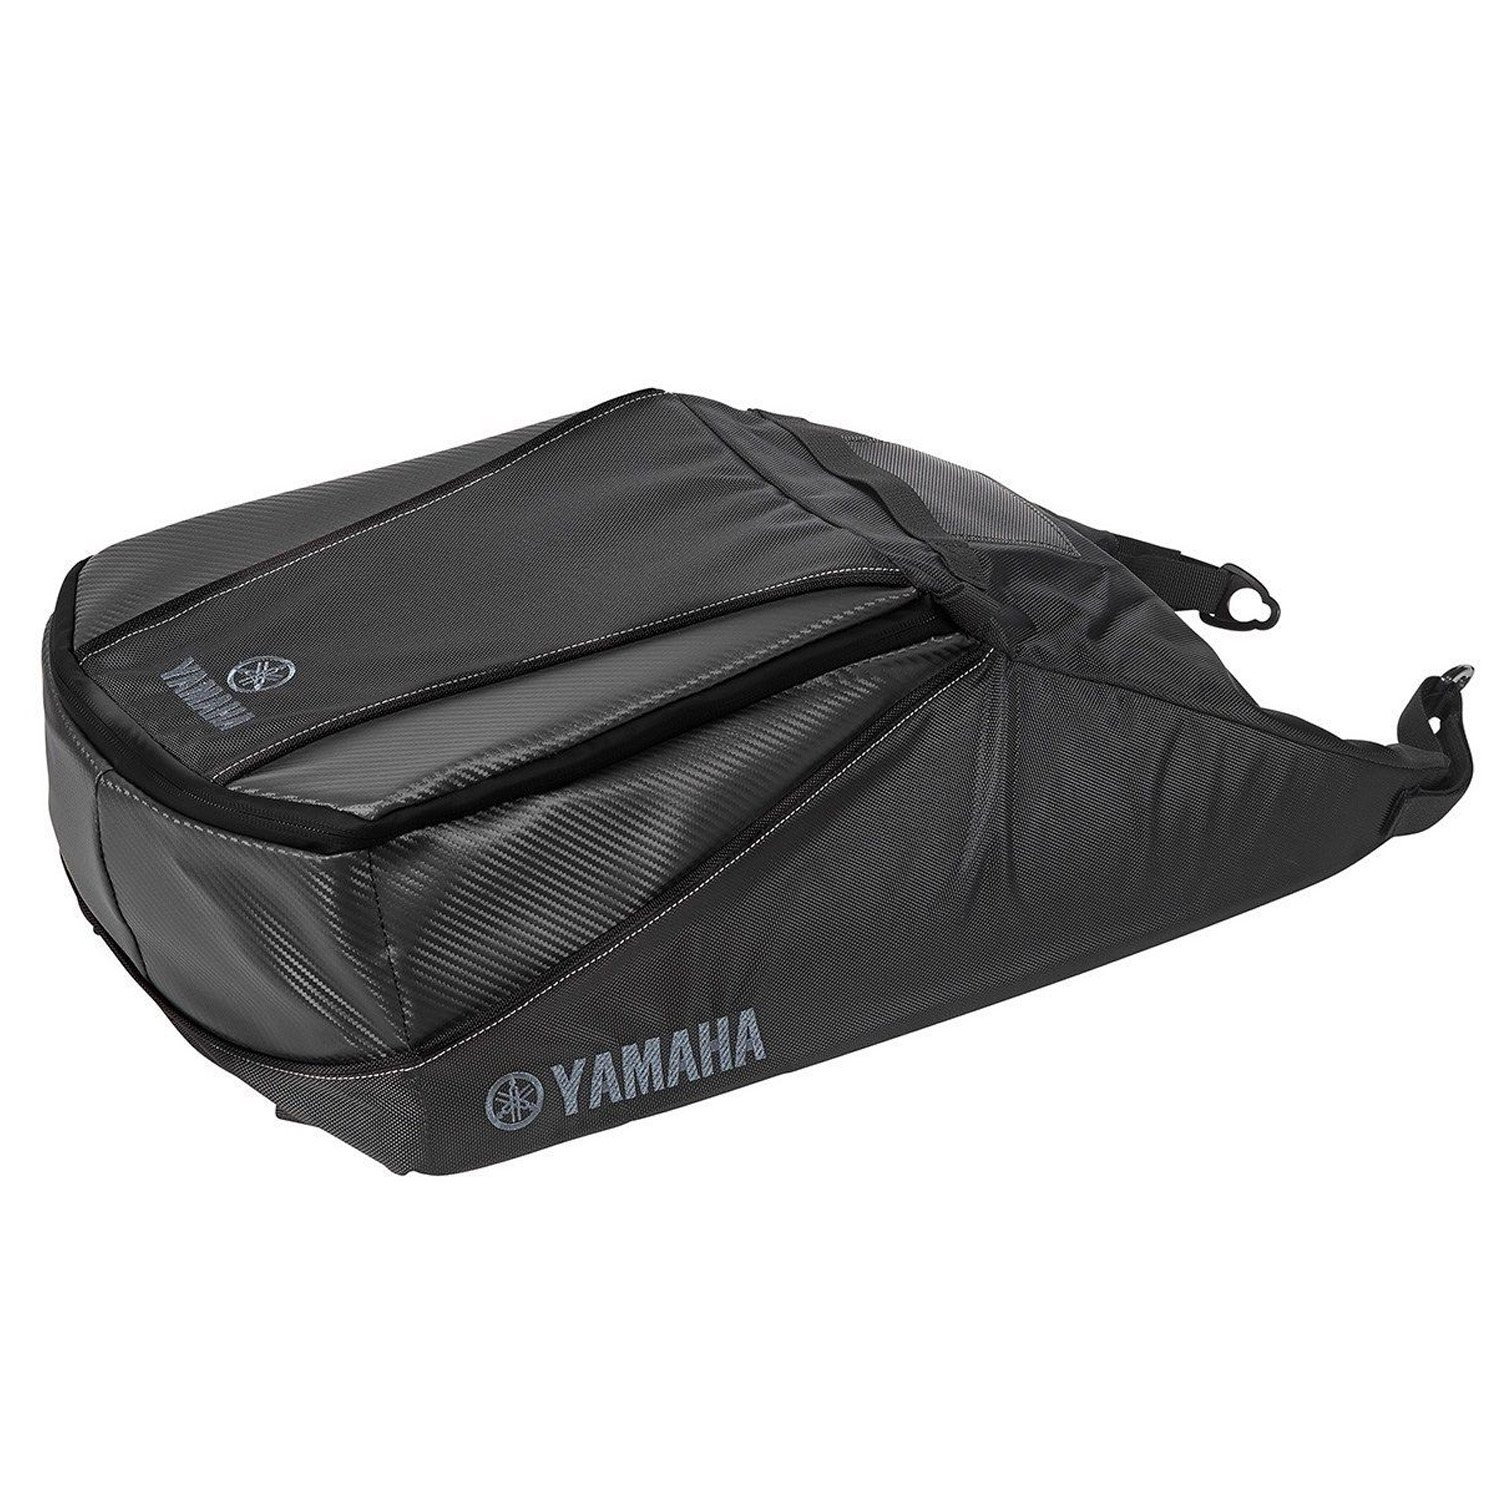 Yamaha Snowmobile New OEM Black Tunnel Gear Bag, Sidewinder, SMA-8LY63-00-BK